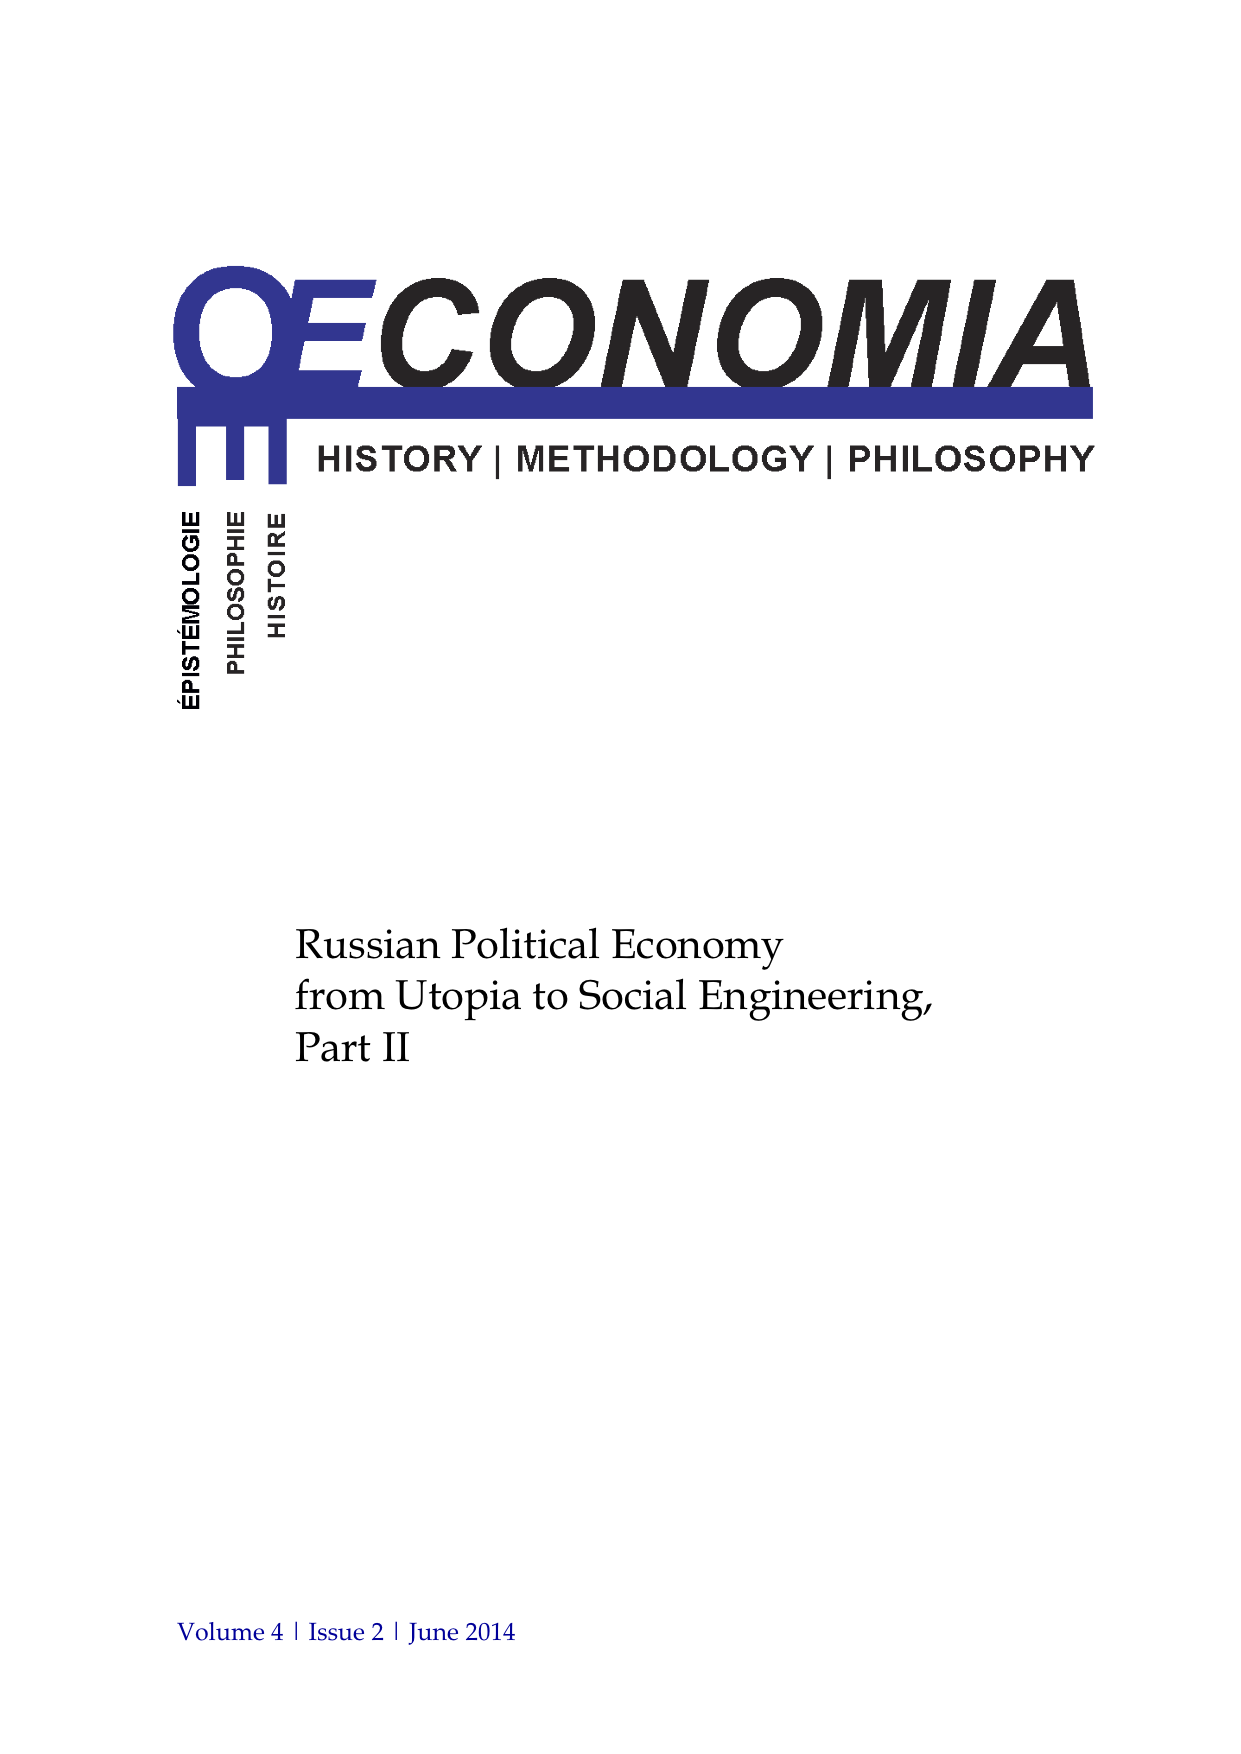 Russian Political Economy from Utopia to Social Engineering (2014)